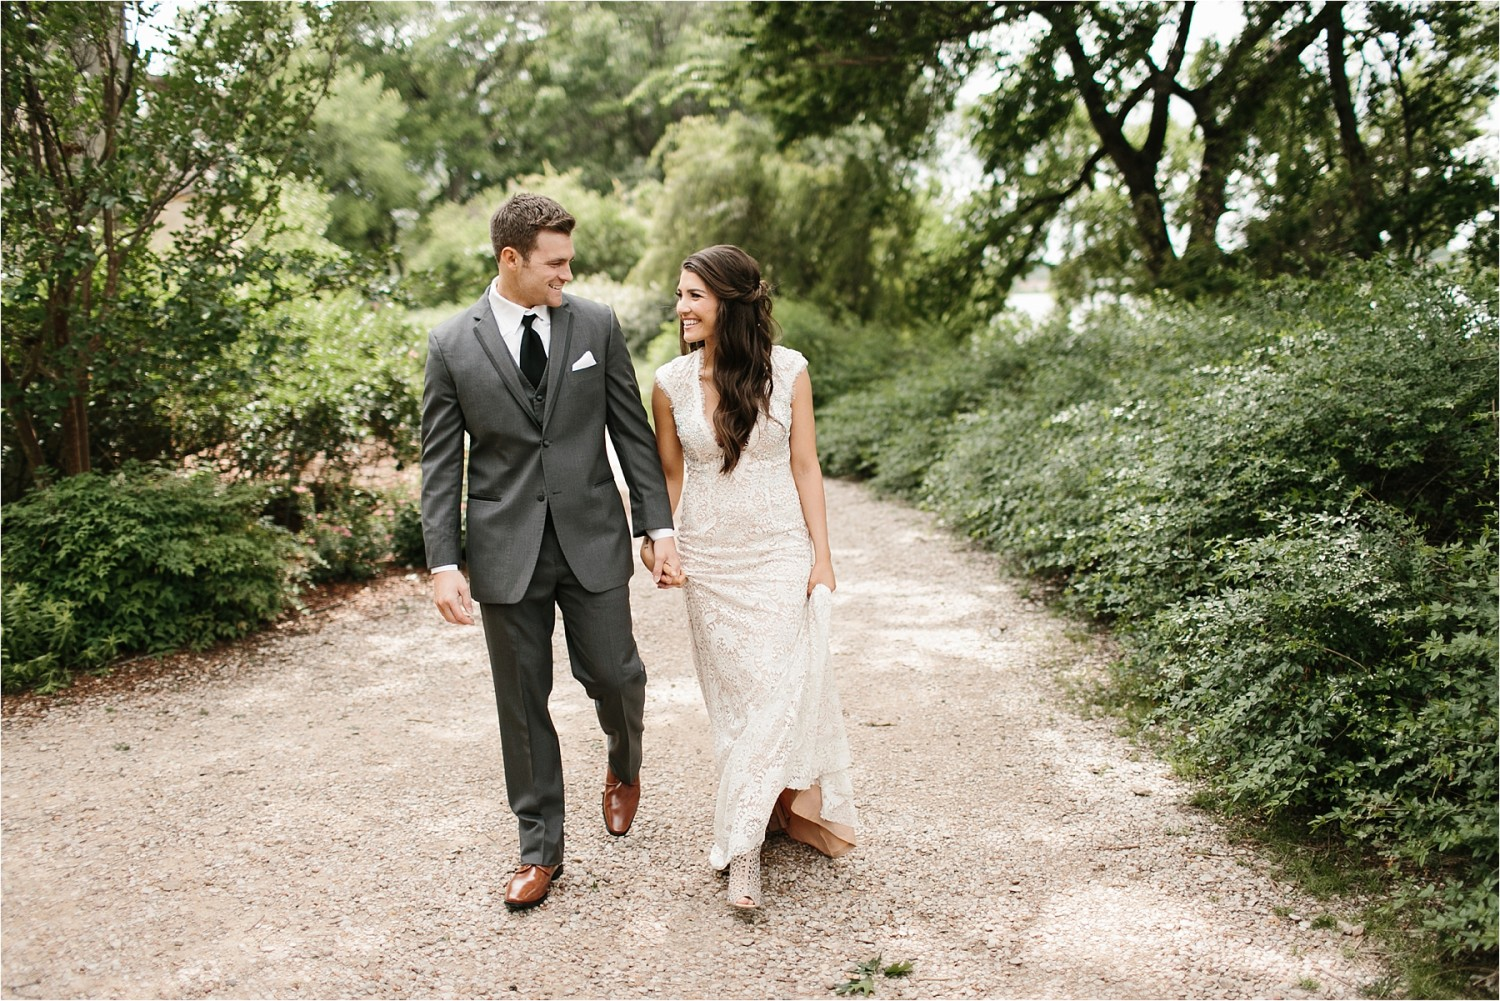 Devyn + Caden // a dallas arboretum wedding